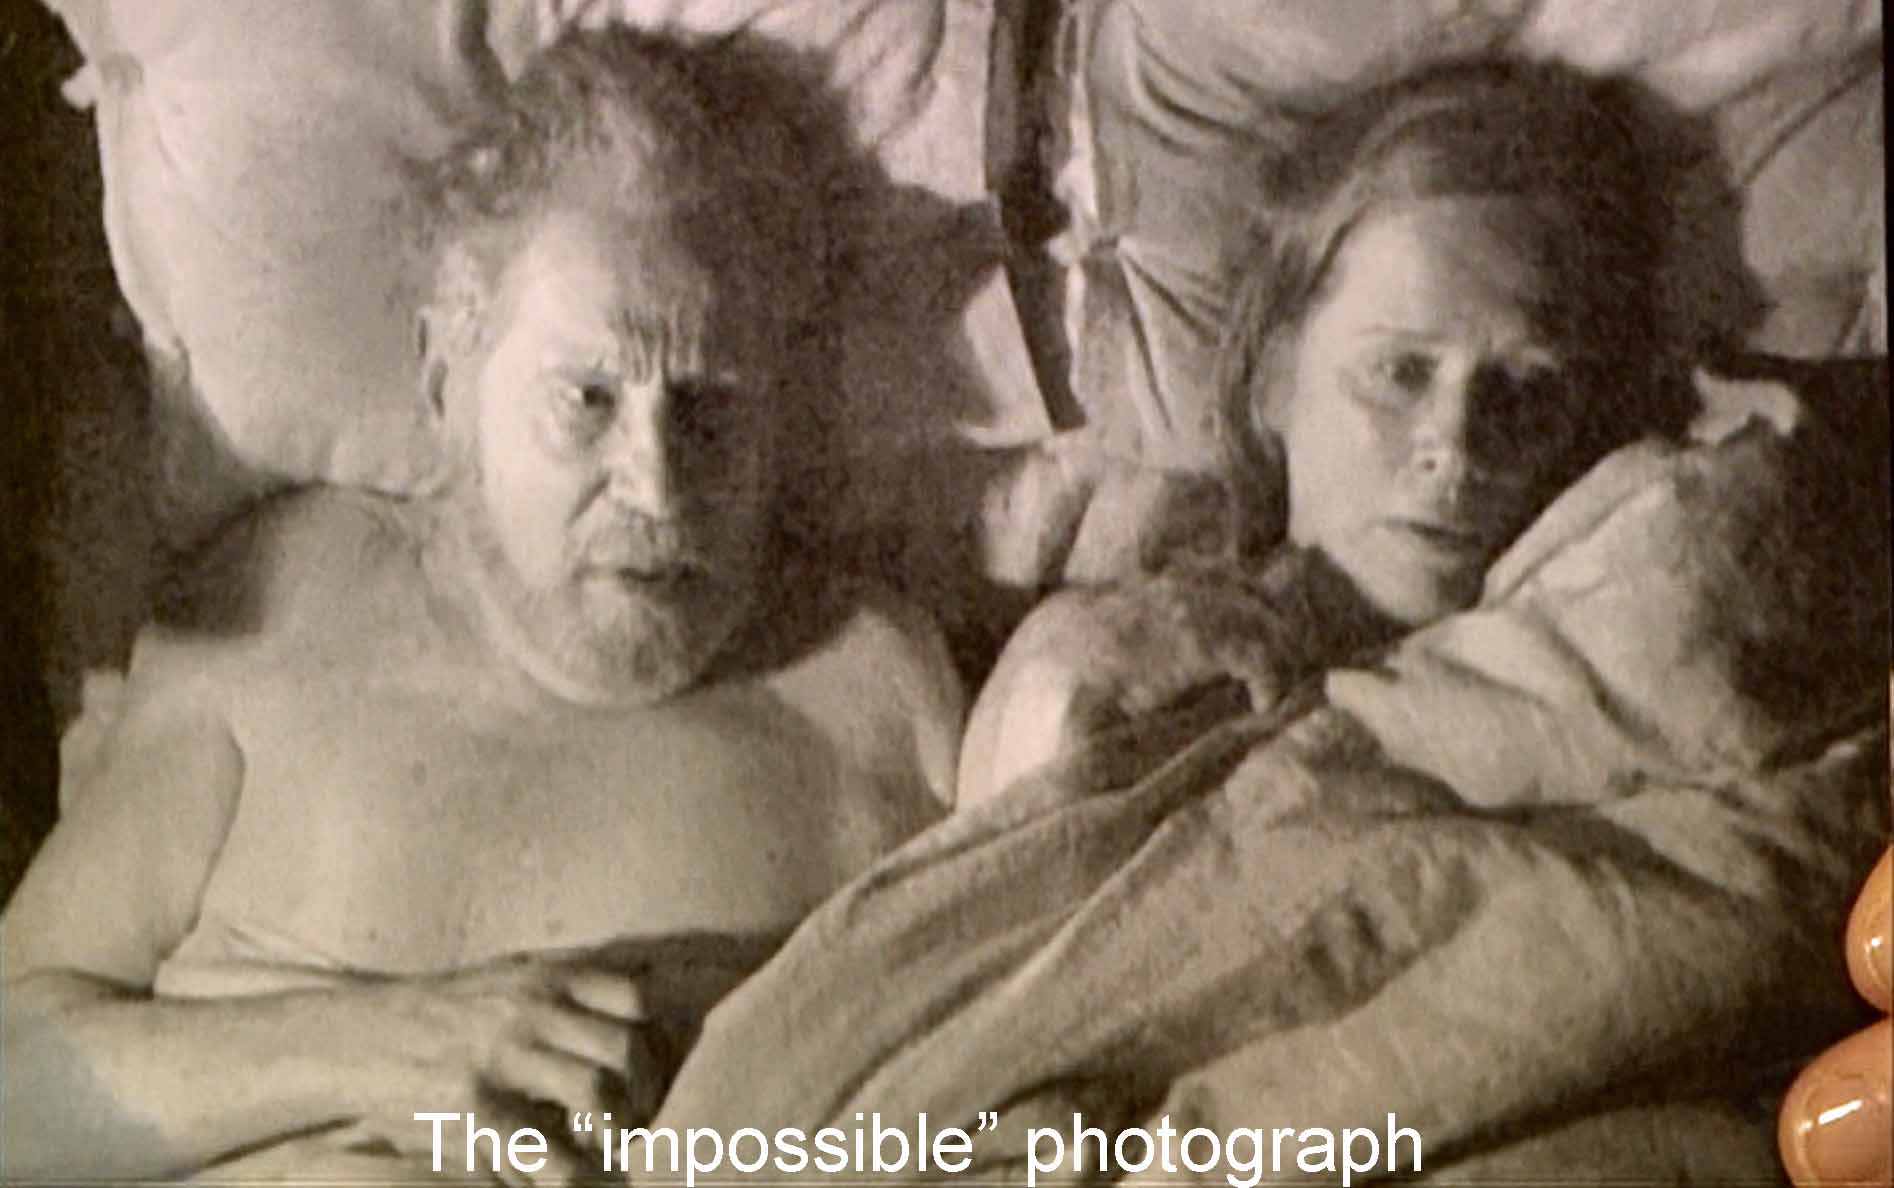 The 'impossible' photograph